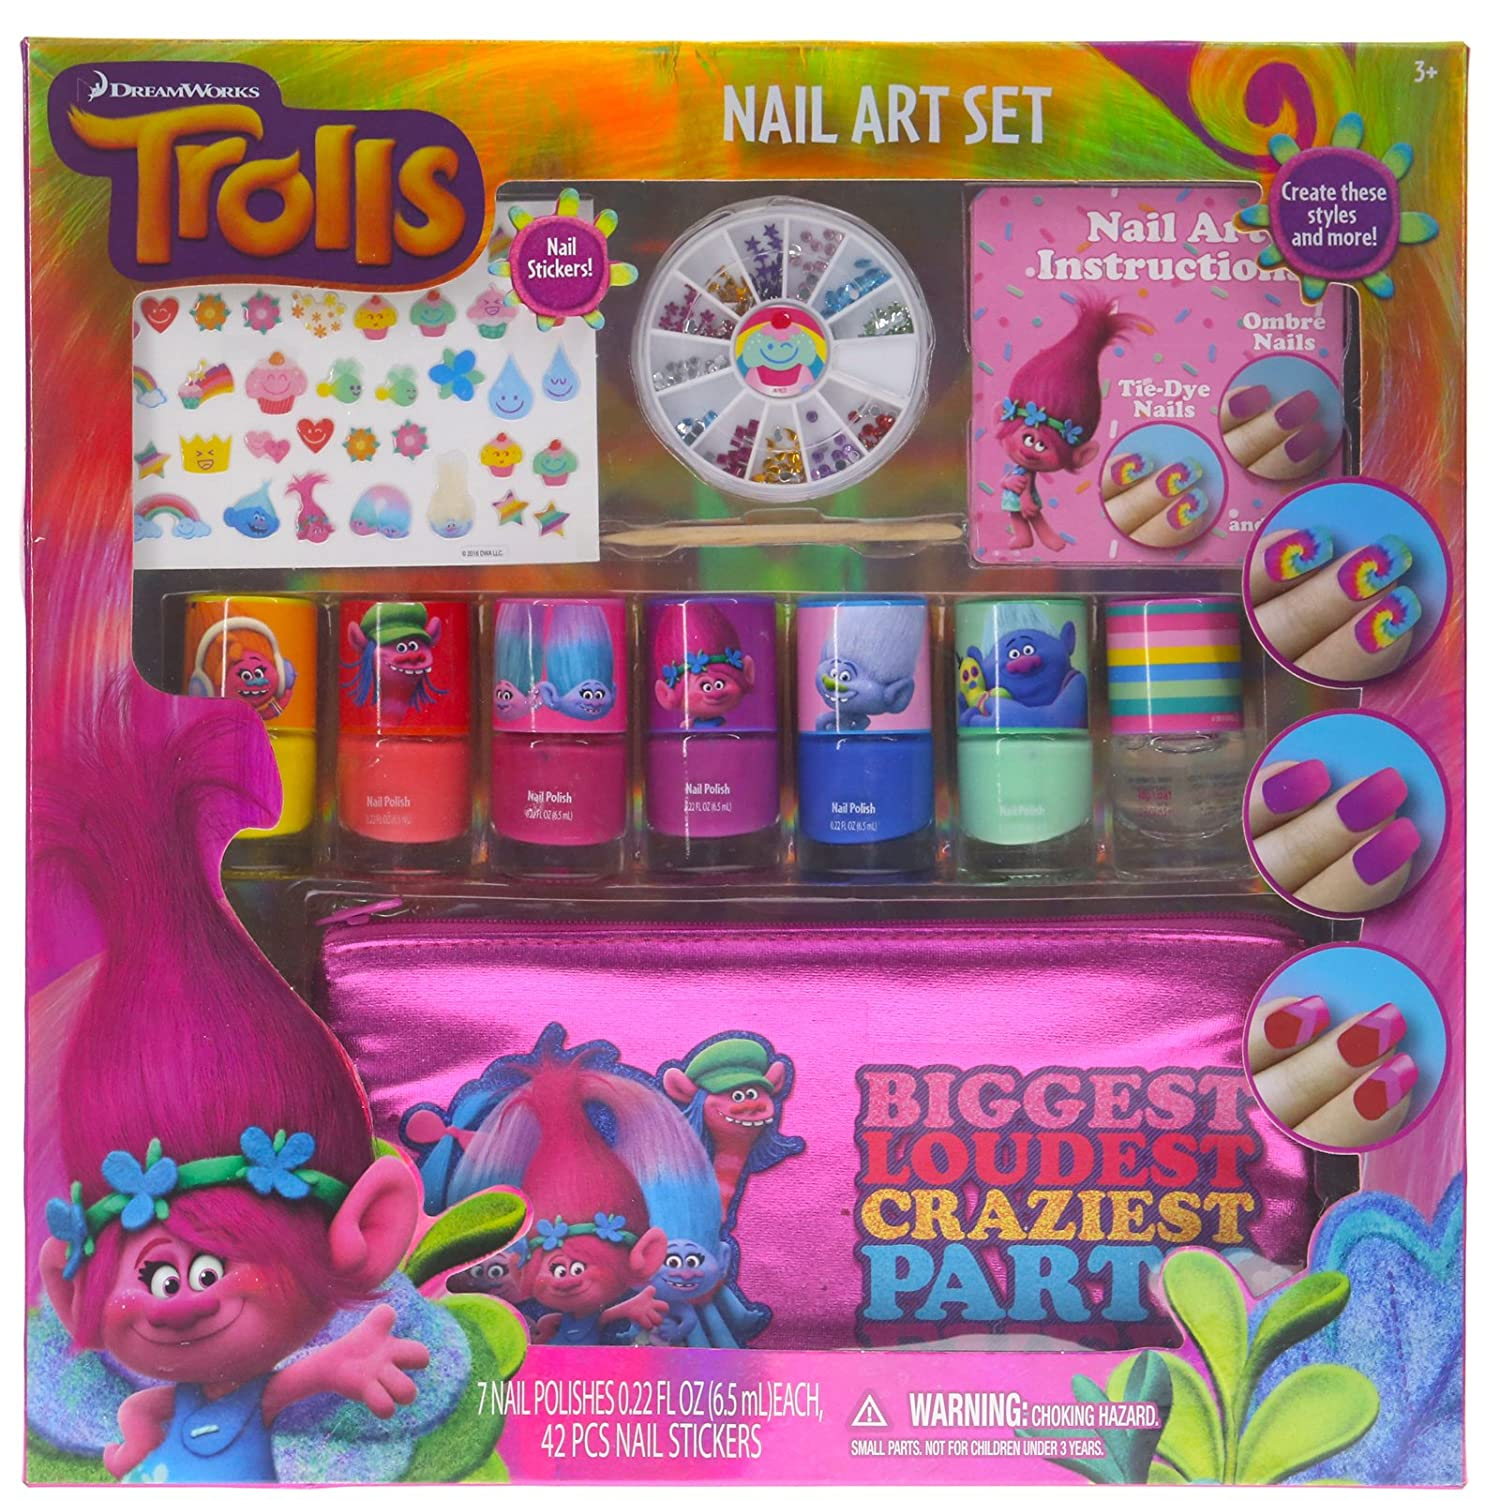 Amazon.com : Townley Girl Dreamworks Trolls Nail Art Set, Includes ...